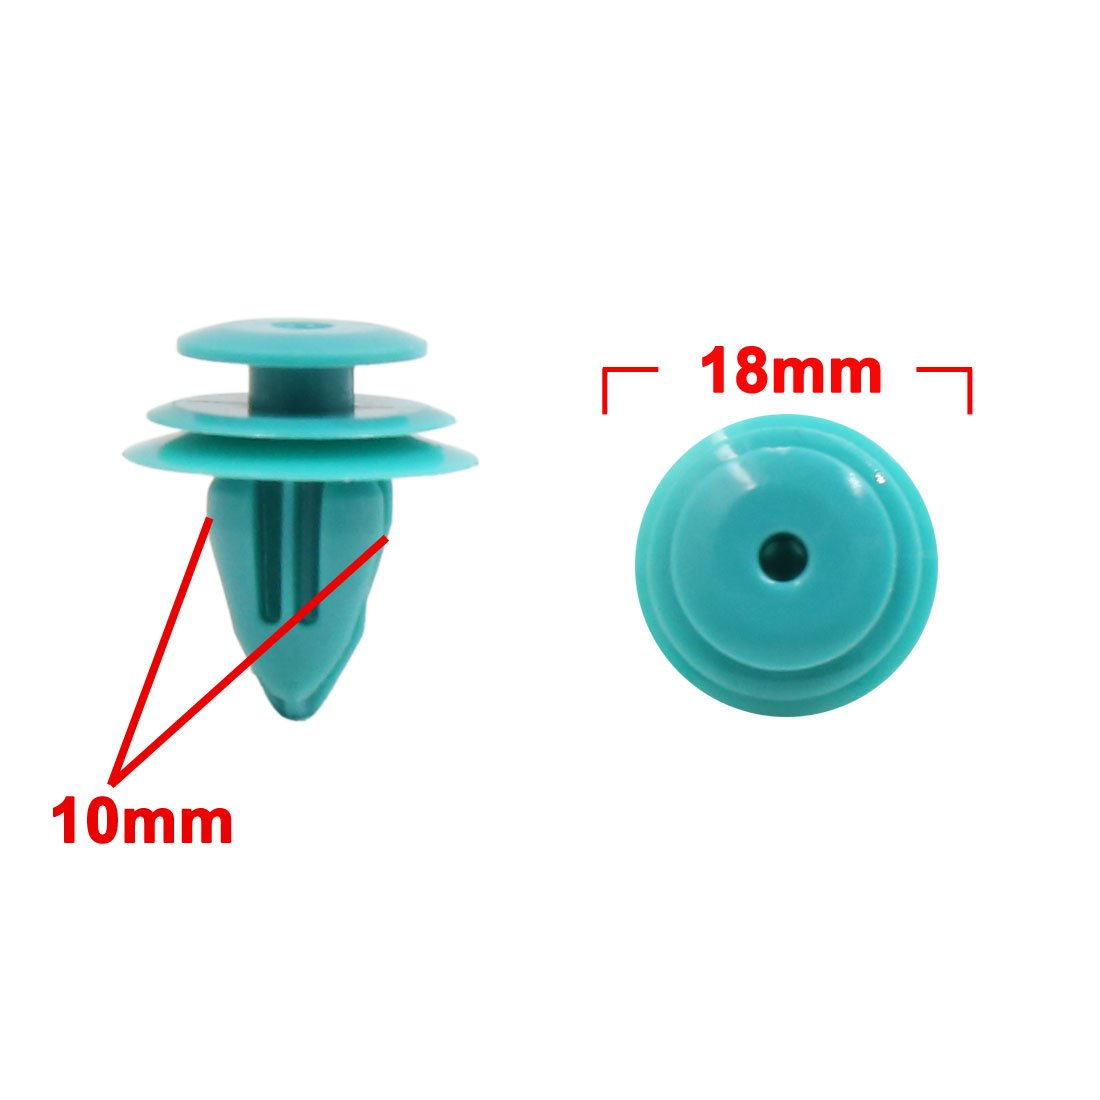 Uxcell a17111400ux0636 Blue 50Pcs Car Trim Panel Retainer Clips with 1 Fastener Remover for Toyota